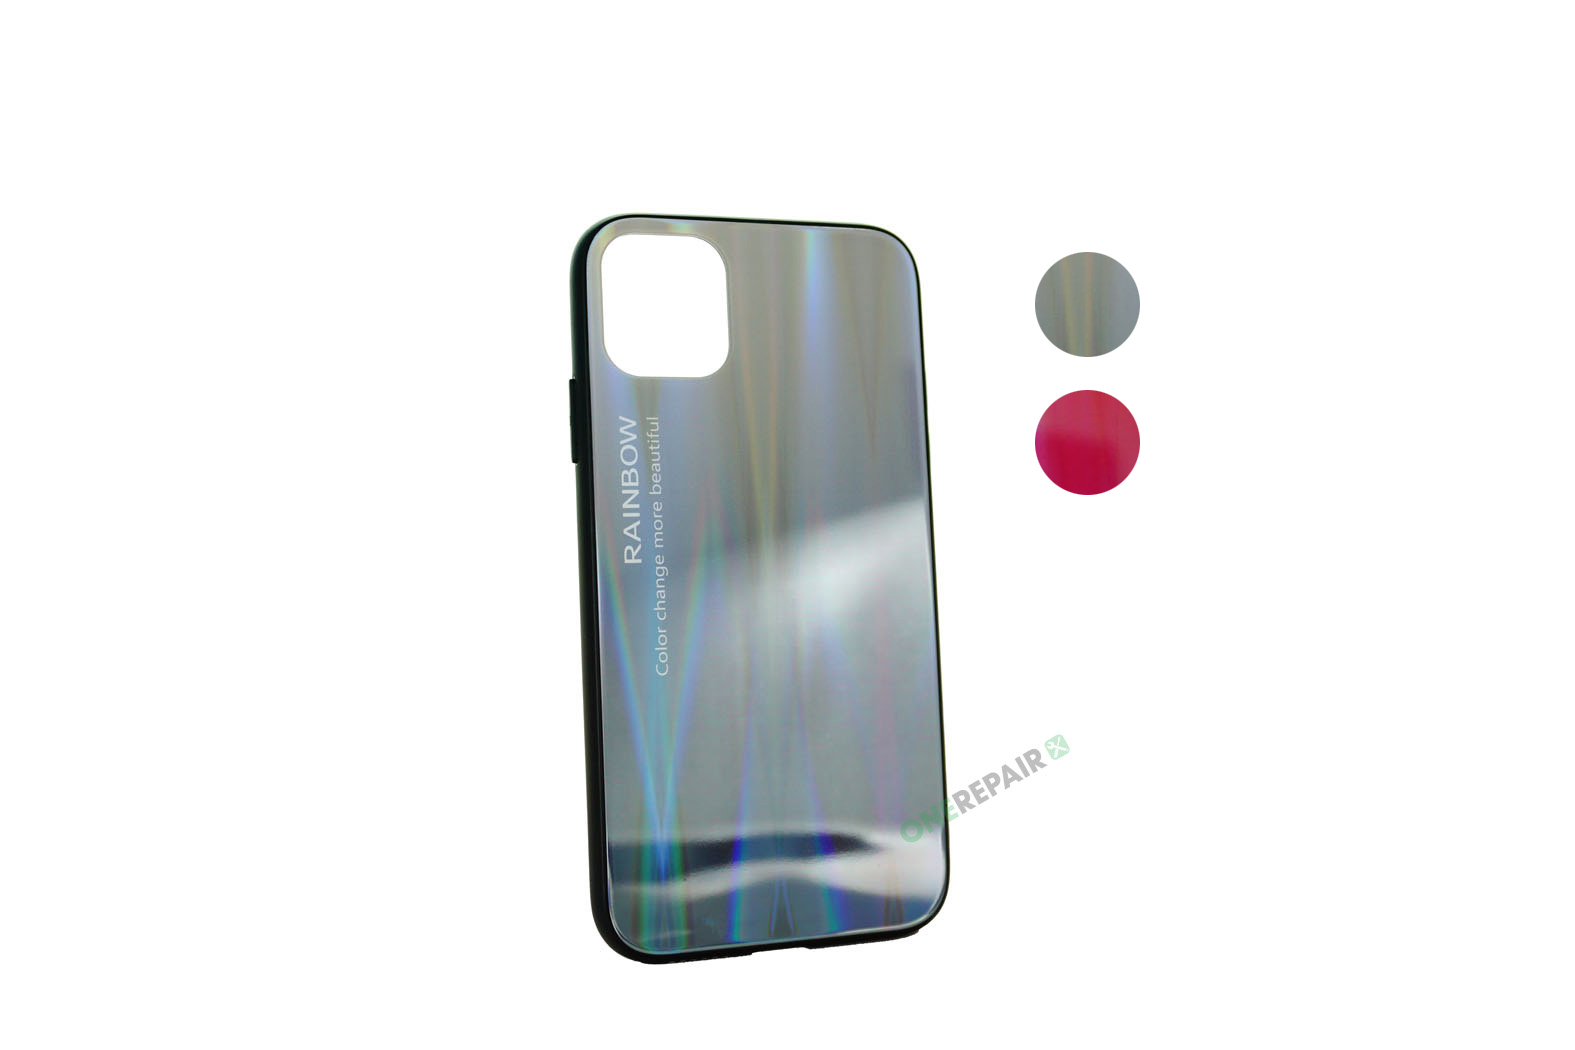 353764-001-002_iPhone_11_lilla_00001